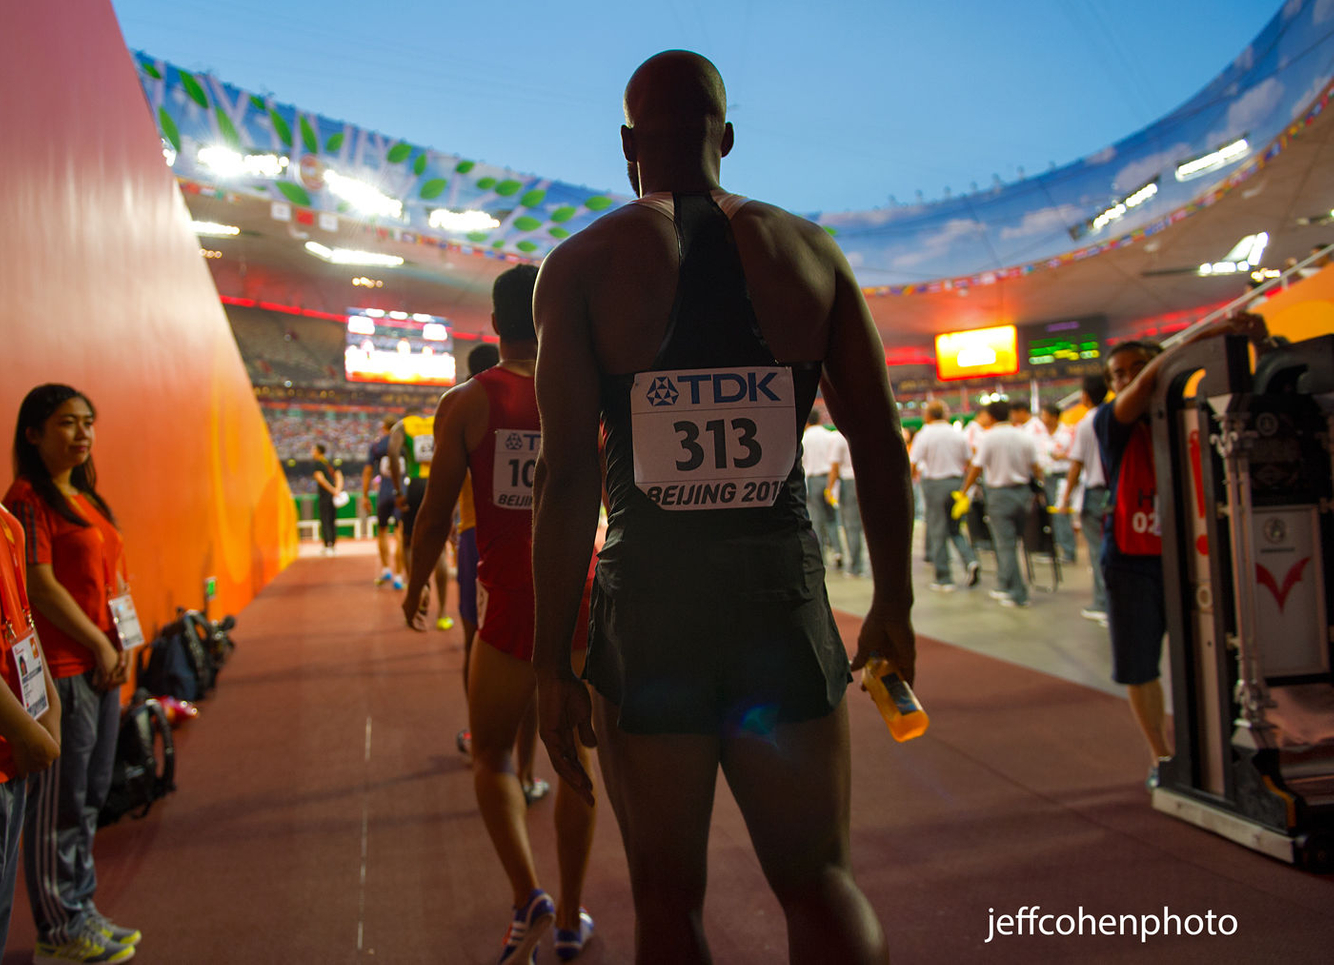 1beijing2015_night__6_110_h_tunnel__jeff_cohen_photo_24092_web.jpg